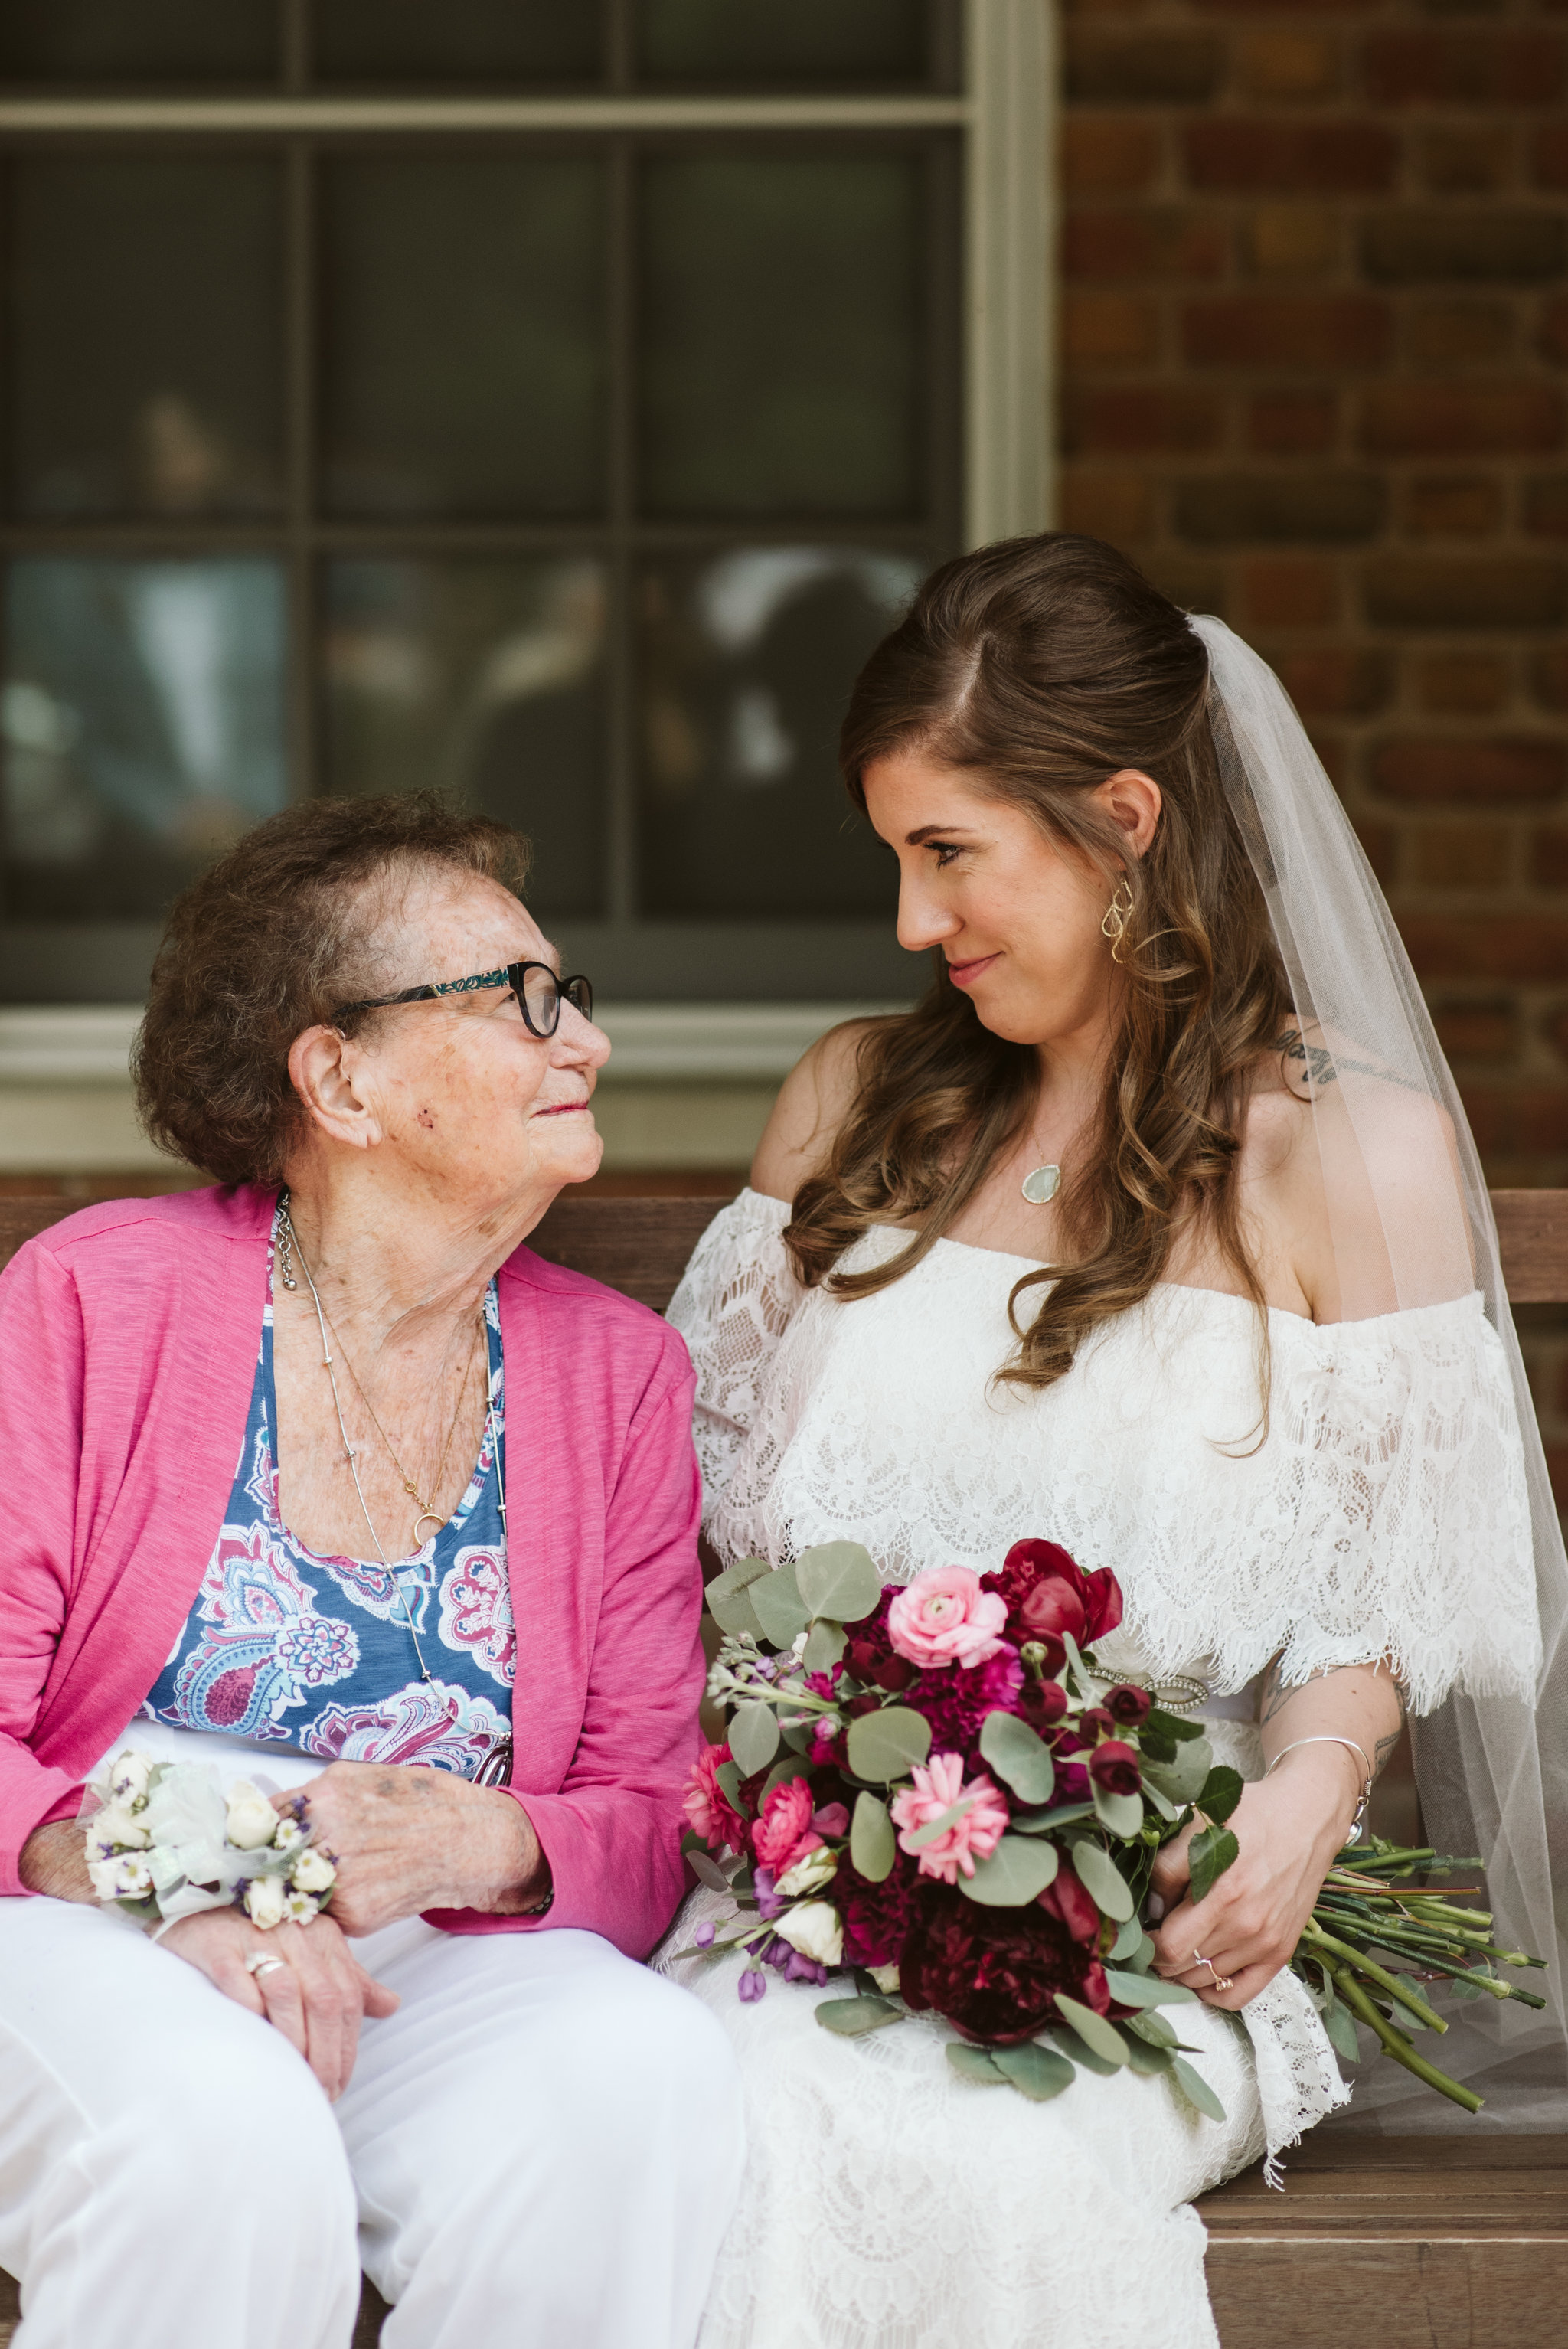 Annapolis, Quaker Wedding, Maryland Wedding Photographer, Intimate, Small Wedding, Vintage, DIY, Bride and Grandmother Smiling at Each Other, Sweet Family Portrait